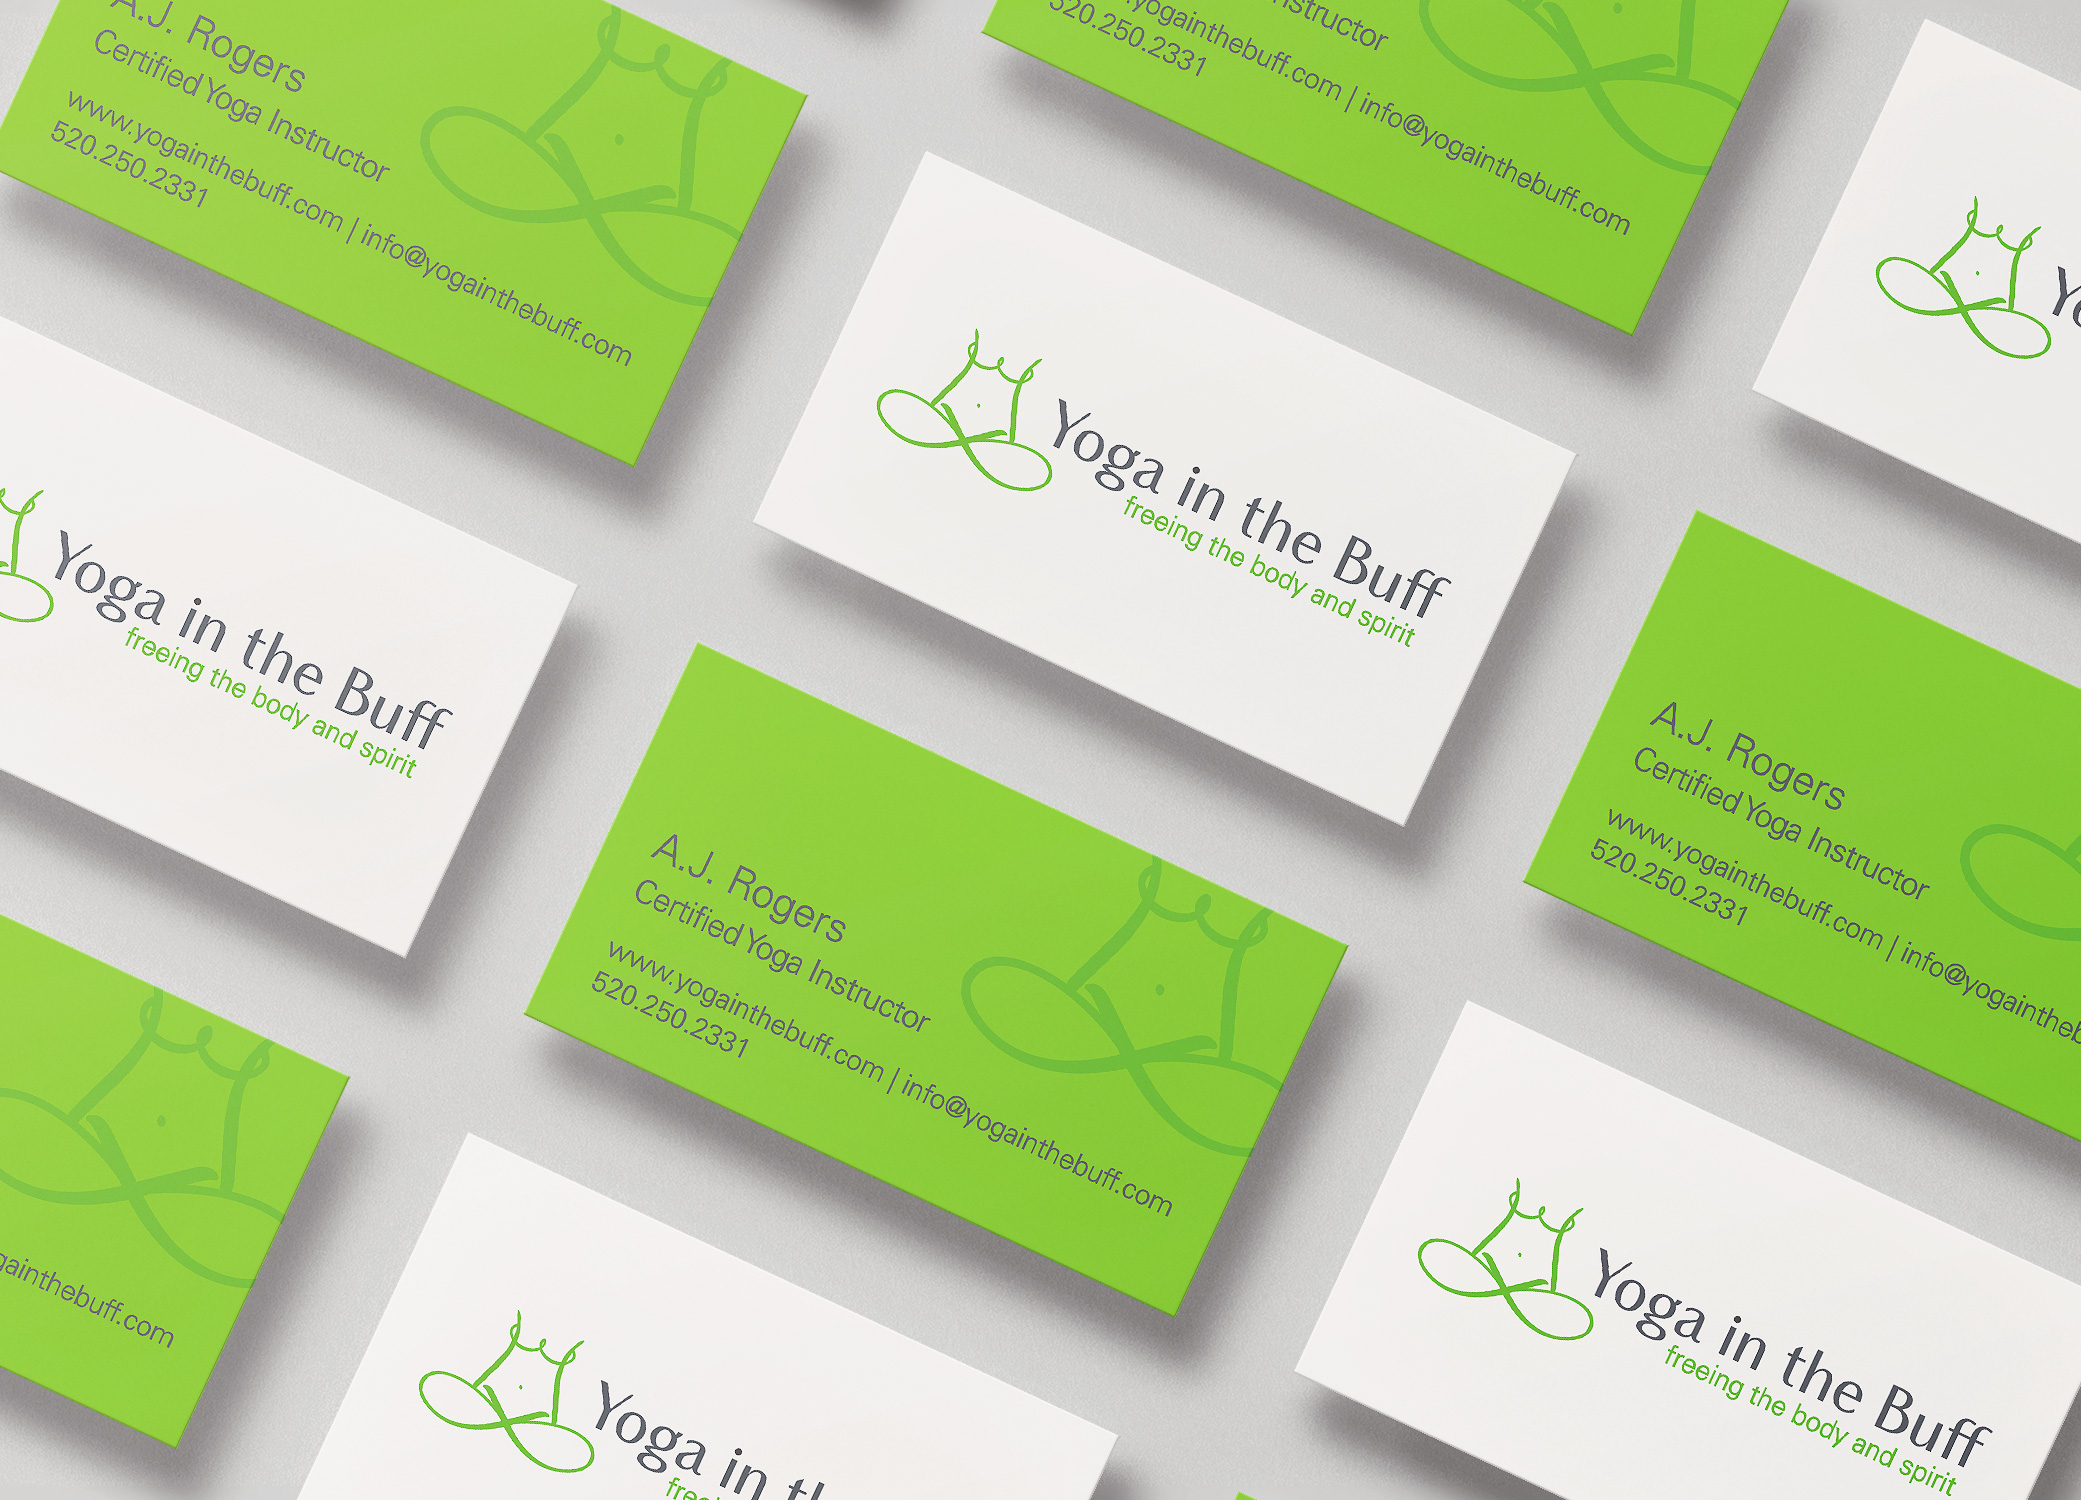 Brand identity for Yoga in the Buff green and white business cards arranged in slanted rows.